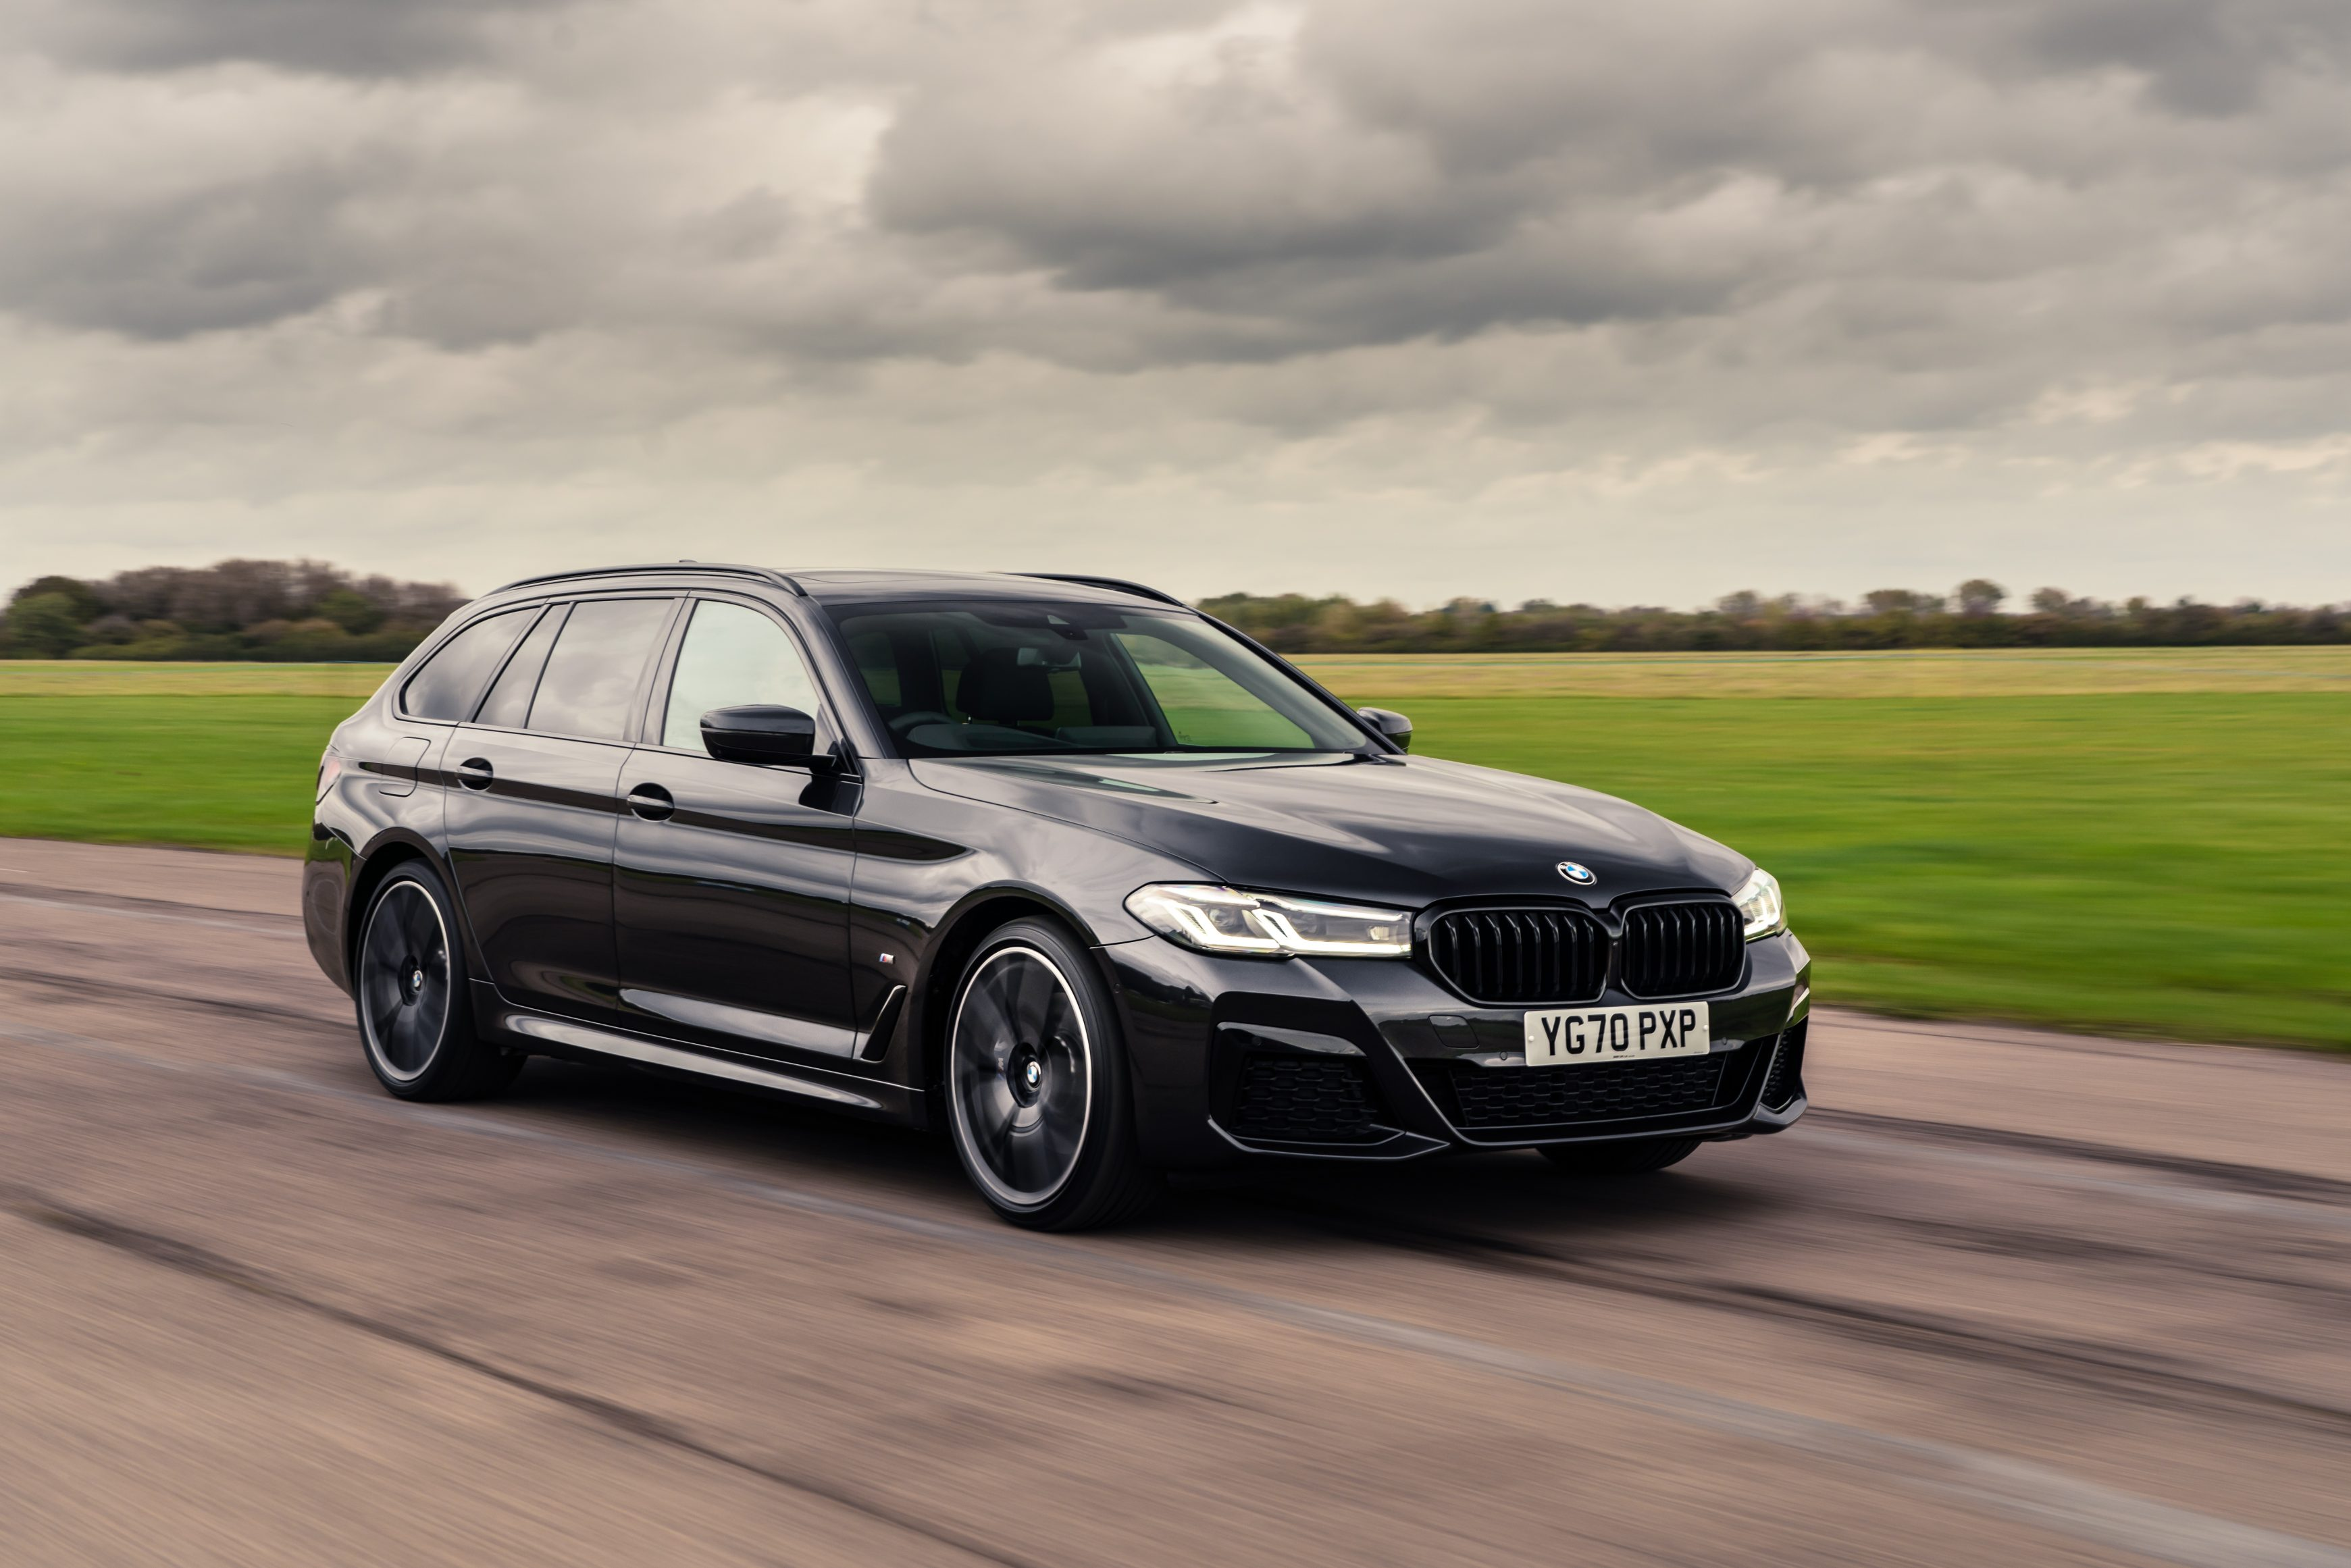 Best estate cars for towing - BMW 5 Series Touring